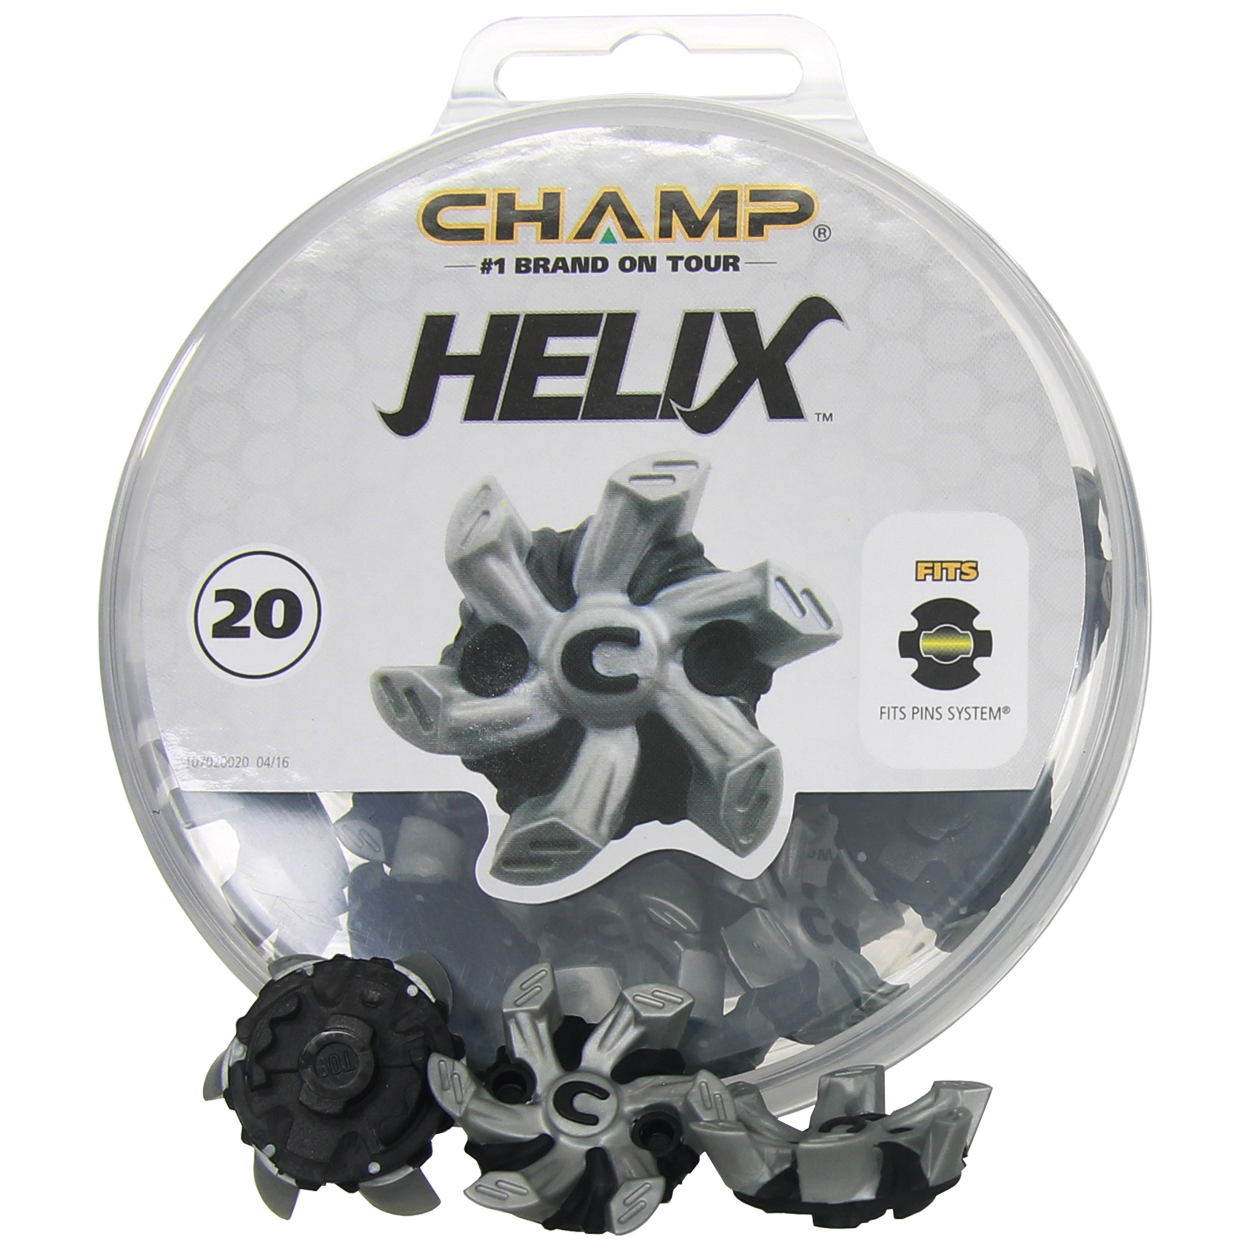 Champ Helix PINS System Soft Spike Replacement Golf Cleats ... 7f4a4674264